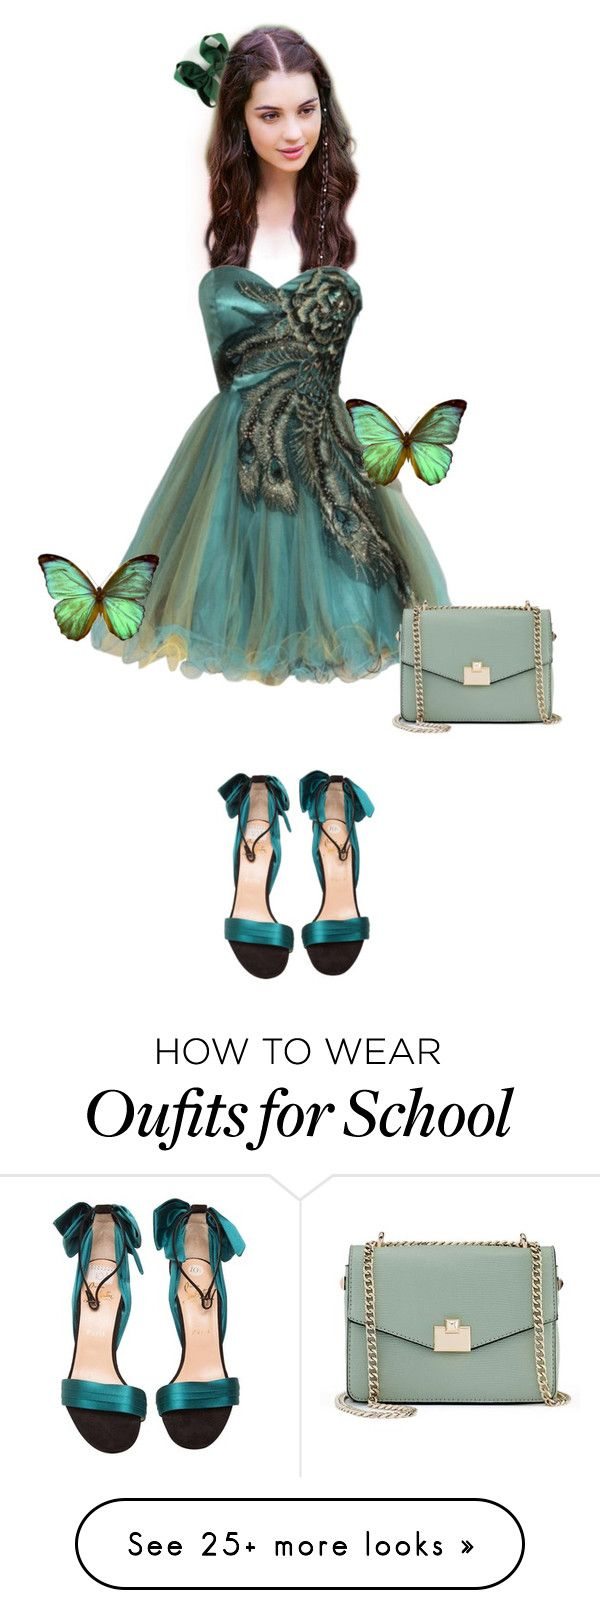 """""""Homecoming Style2"""" by maria-cccli on Polyvore featuring Kane, Jennifer Lopez, Christian Louboutin and Bodas"""